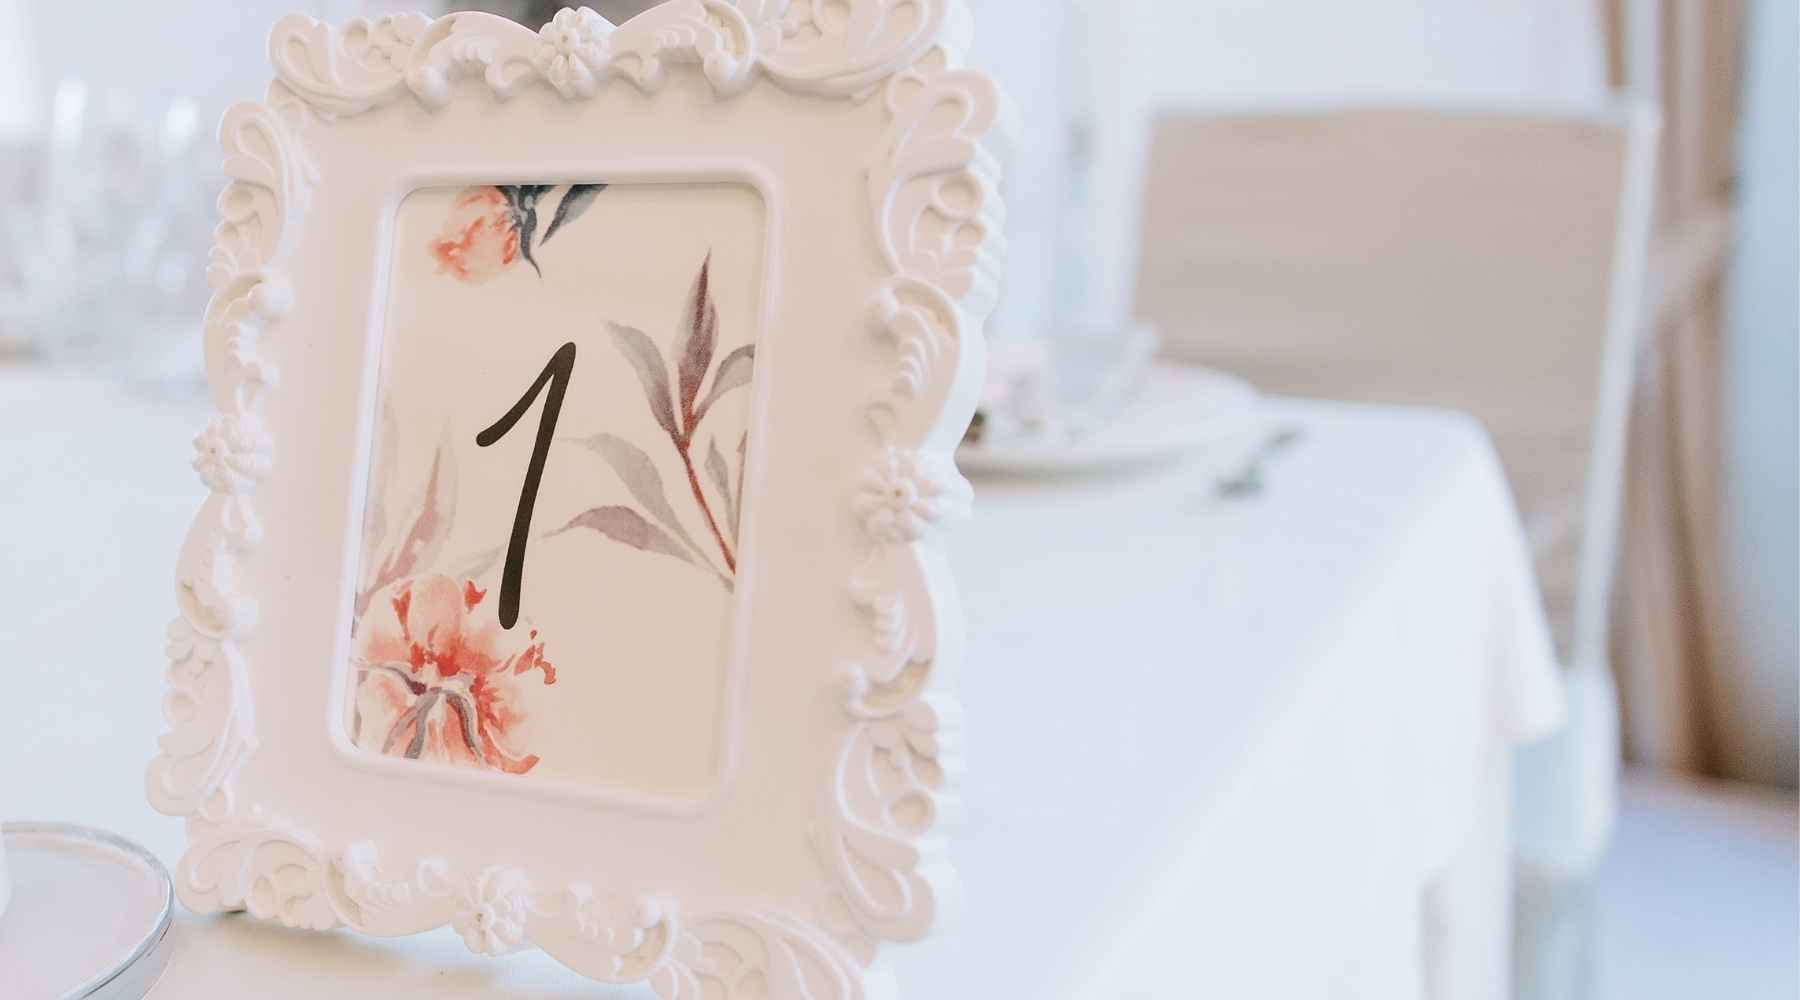 stationery - Creative ways to save money on your wedding: Top 20